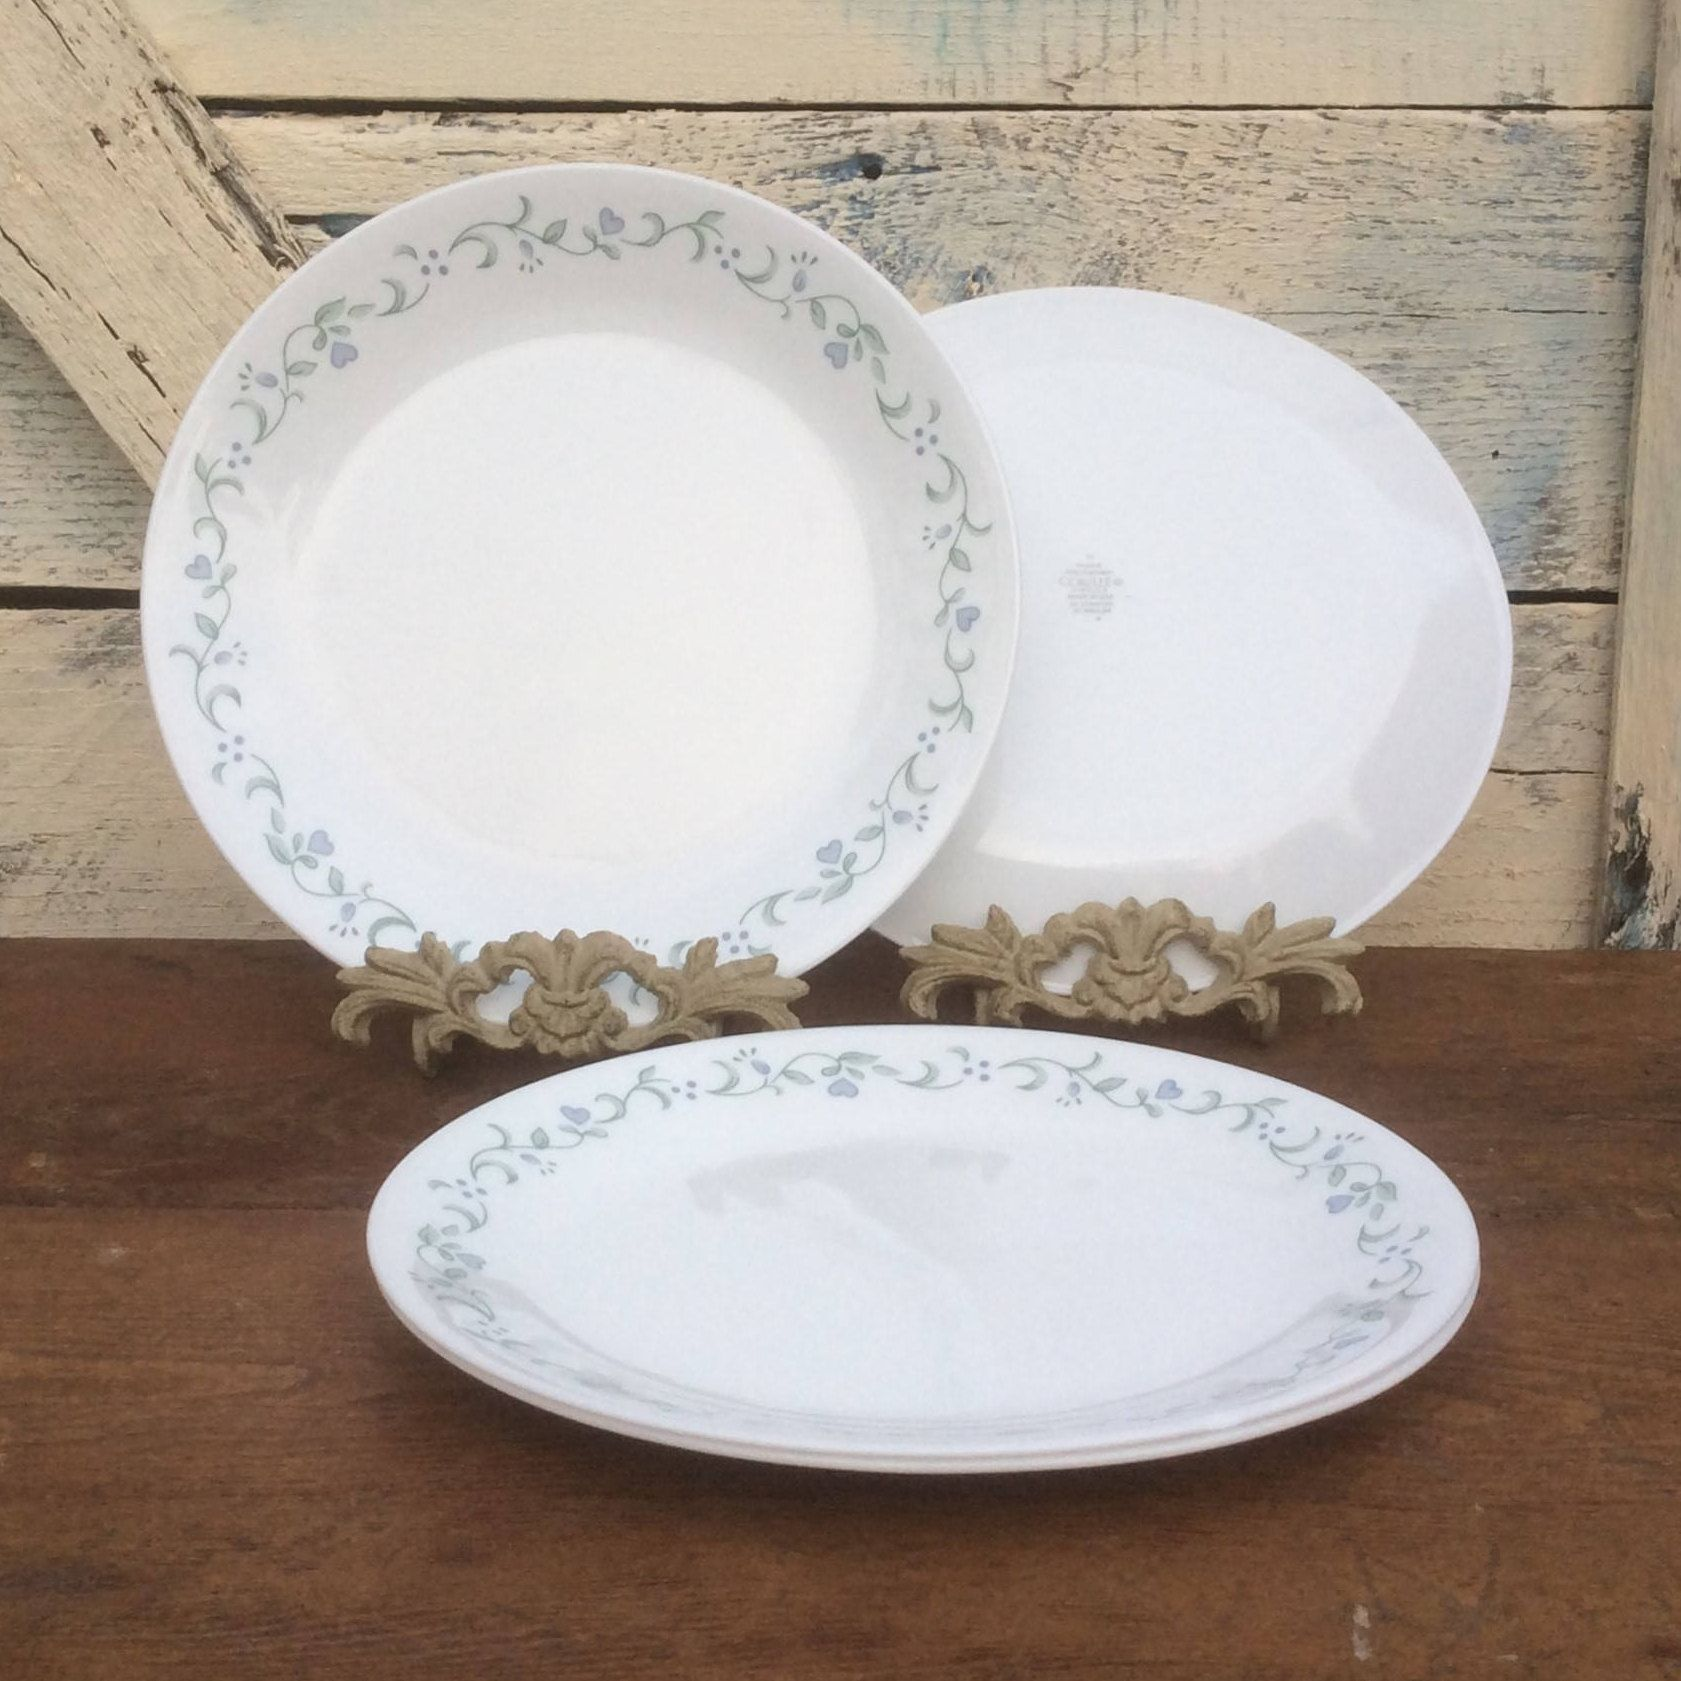 4pc Set Vintage Corelle Country Cottage Dinner Plates | Corelle by Corning Dinnerware | White with & 4pc Set Vintage Corelle Country Cottage Dinner Plates | Corelle by ...